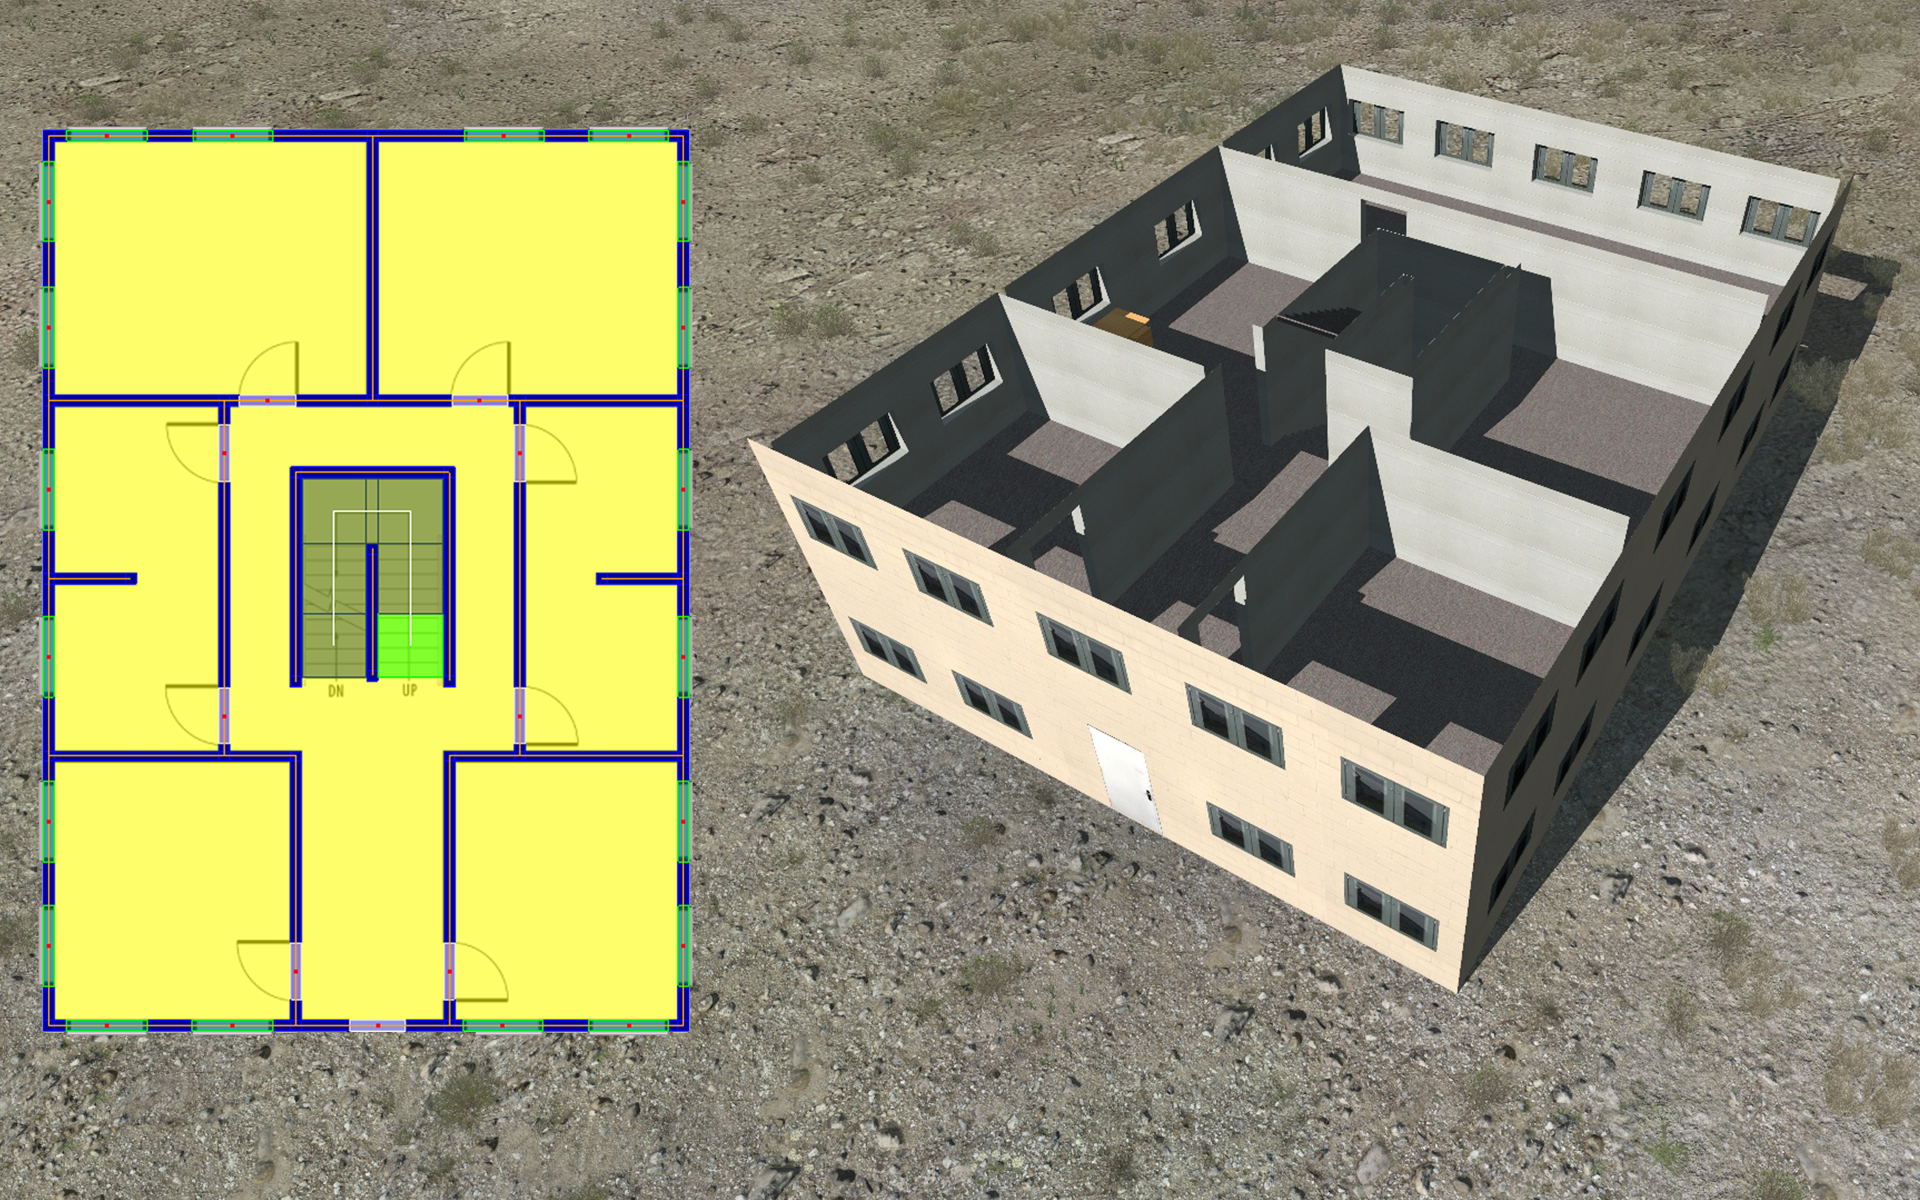 VBS3 building generated using Building Designer